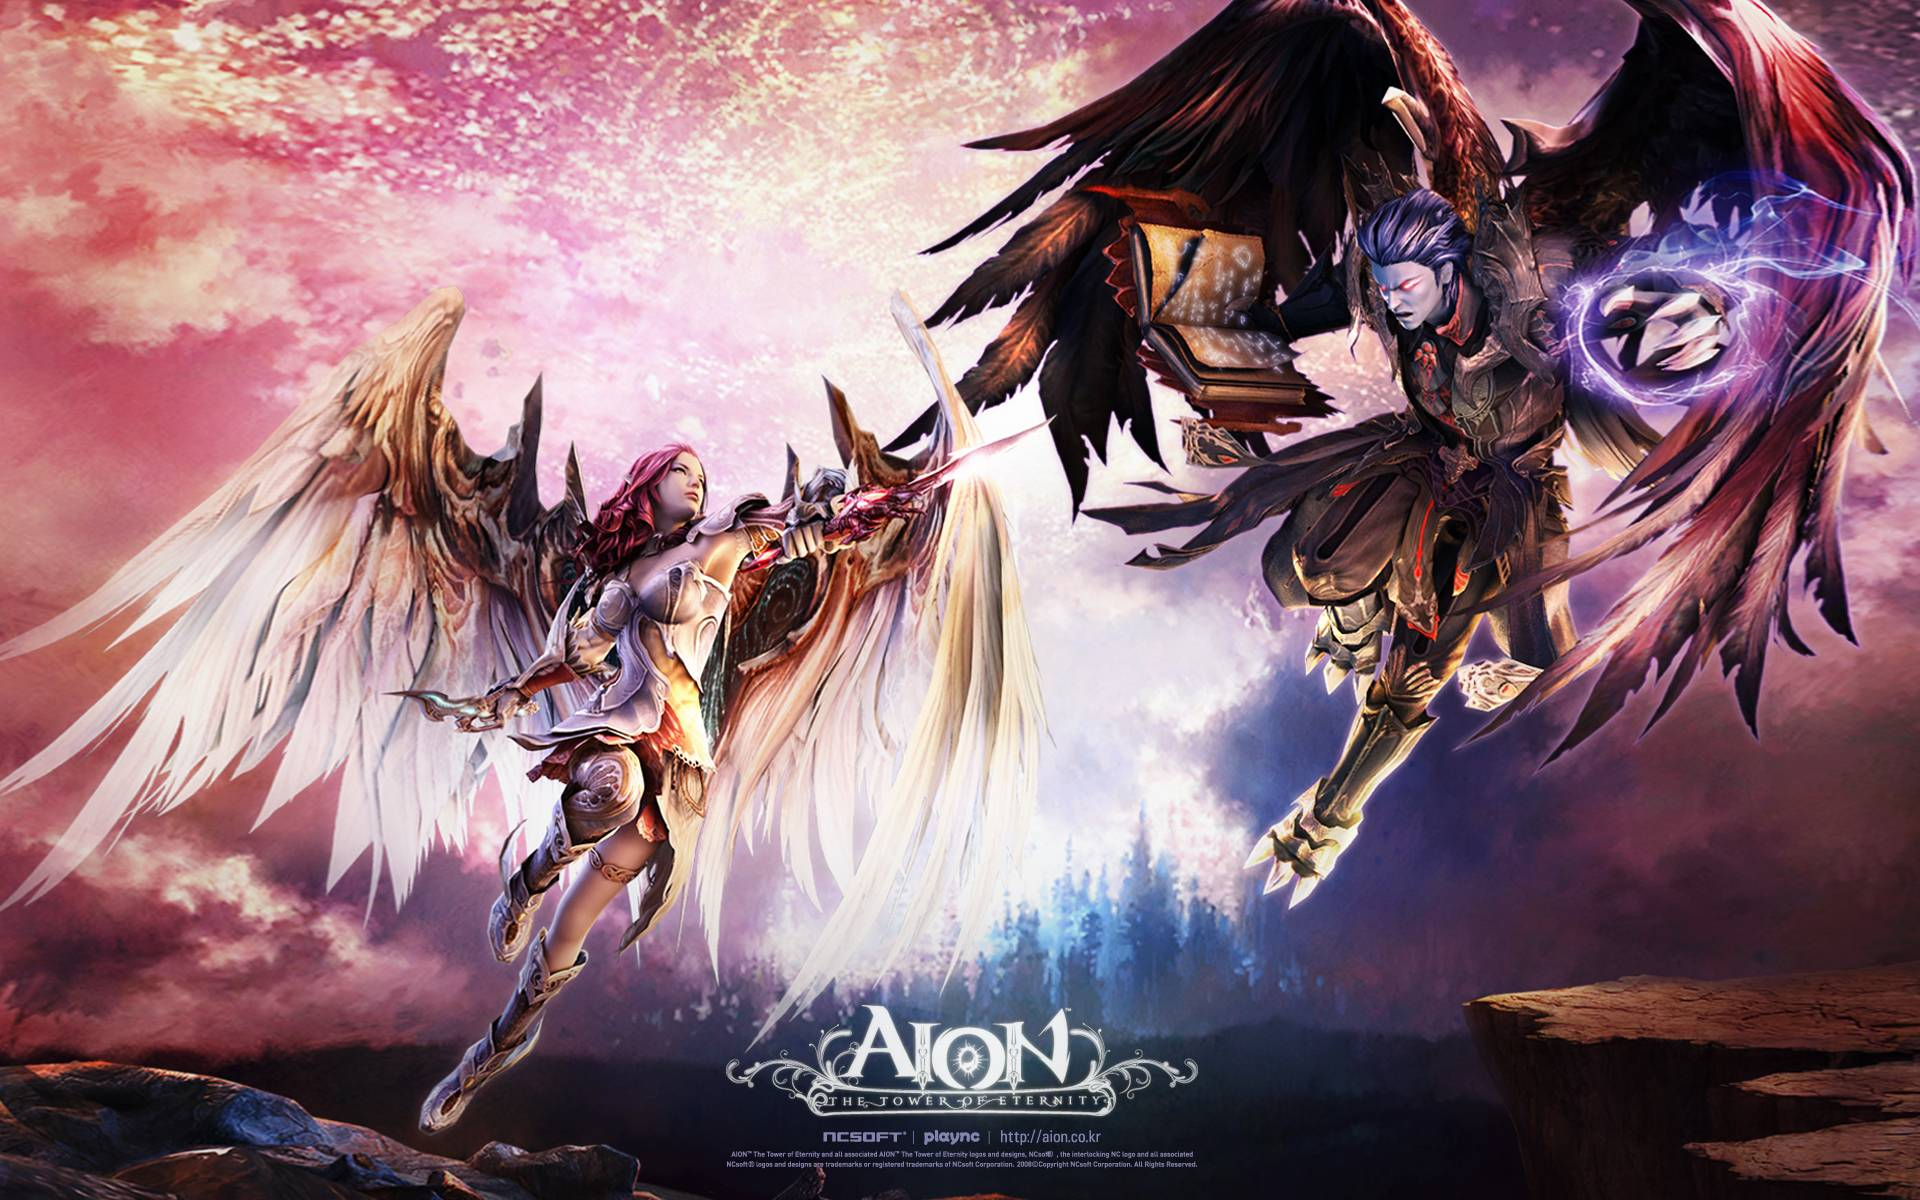 Aion Wallpapers - Full HD wallpaper search - page 10